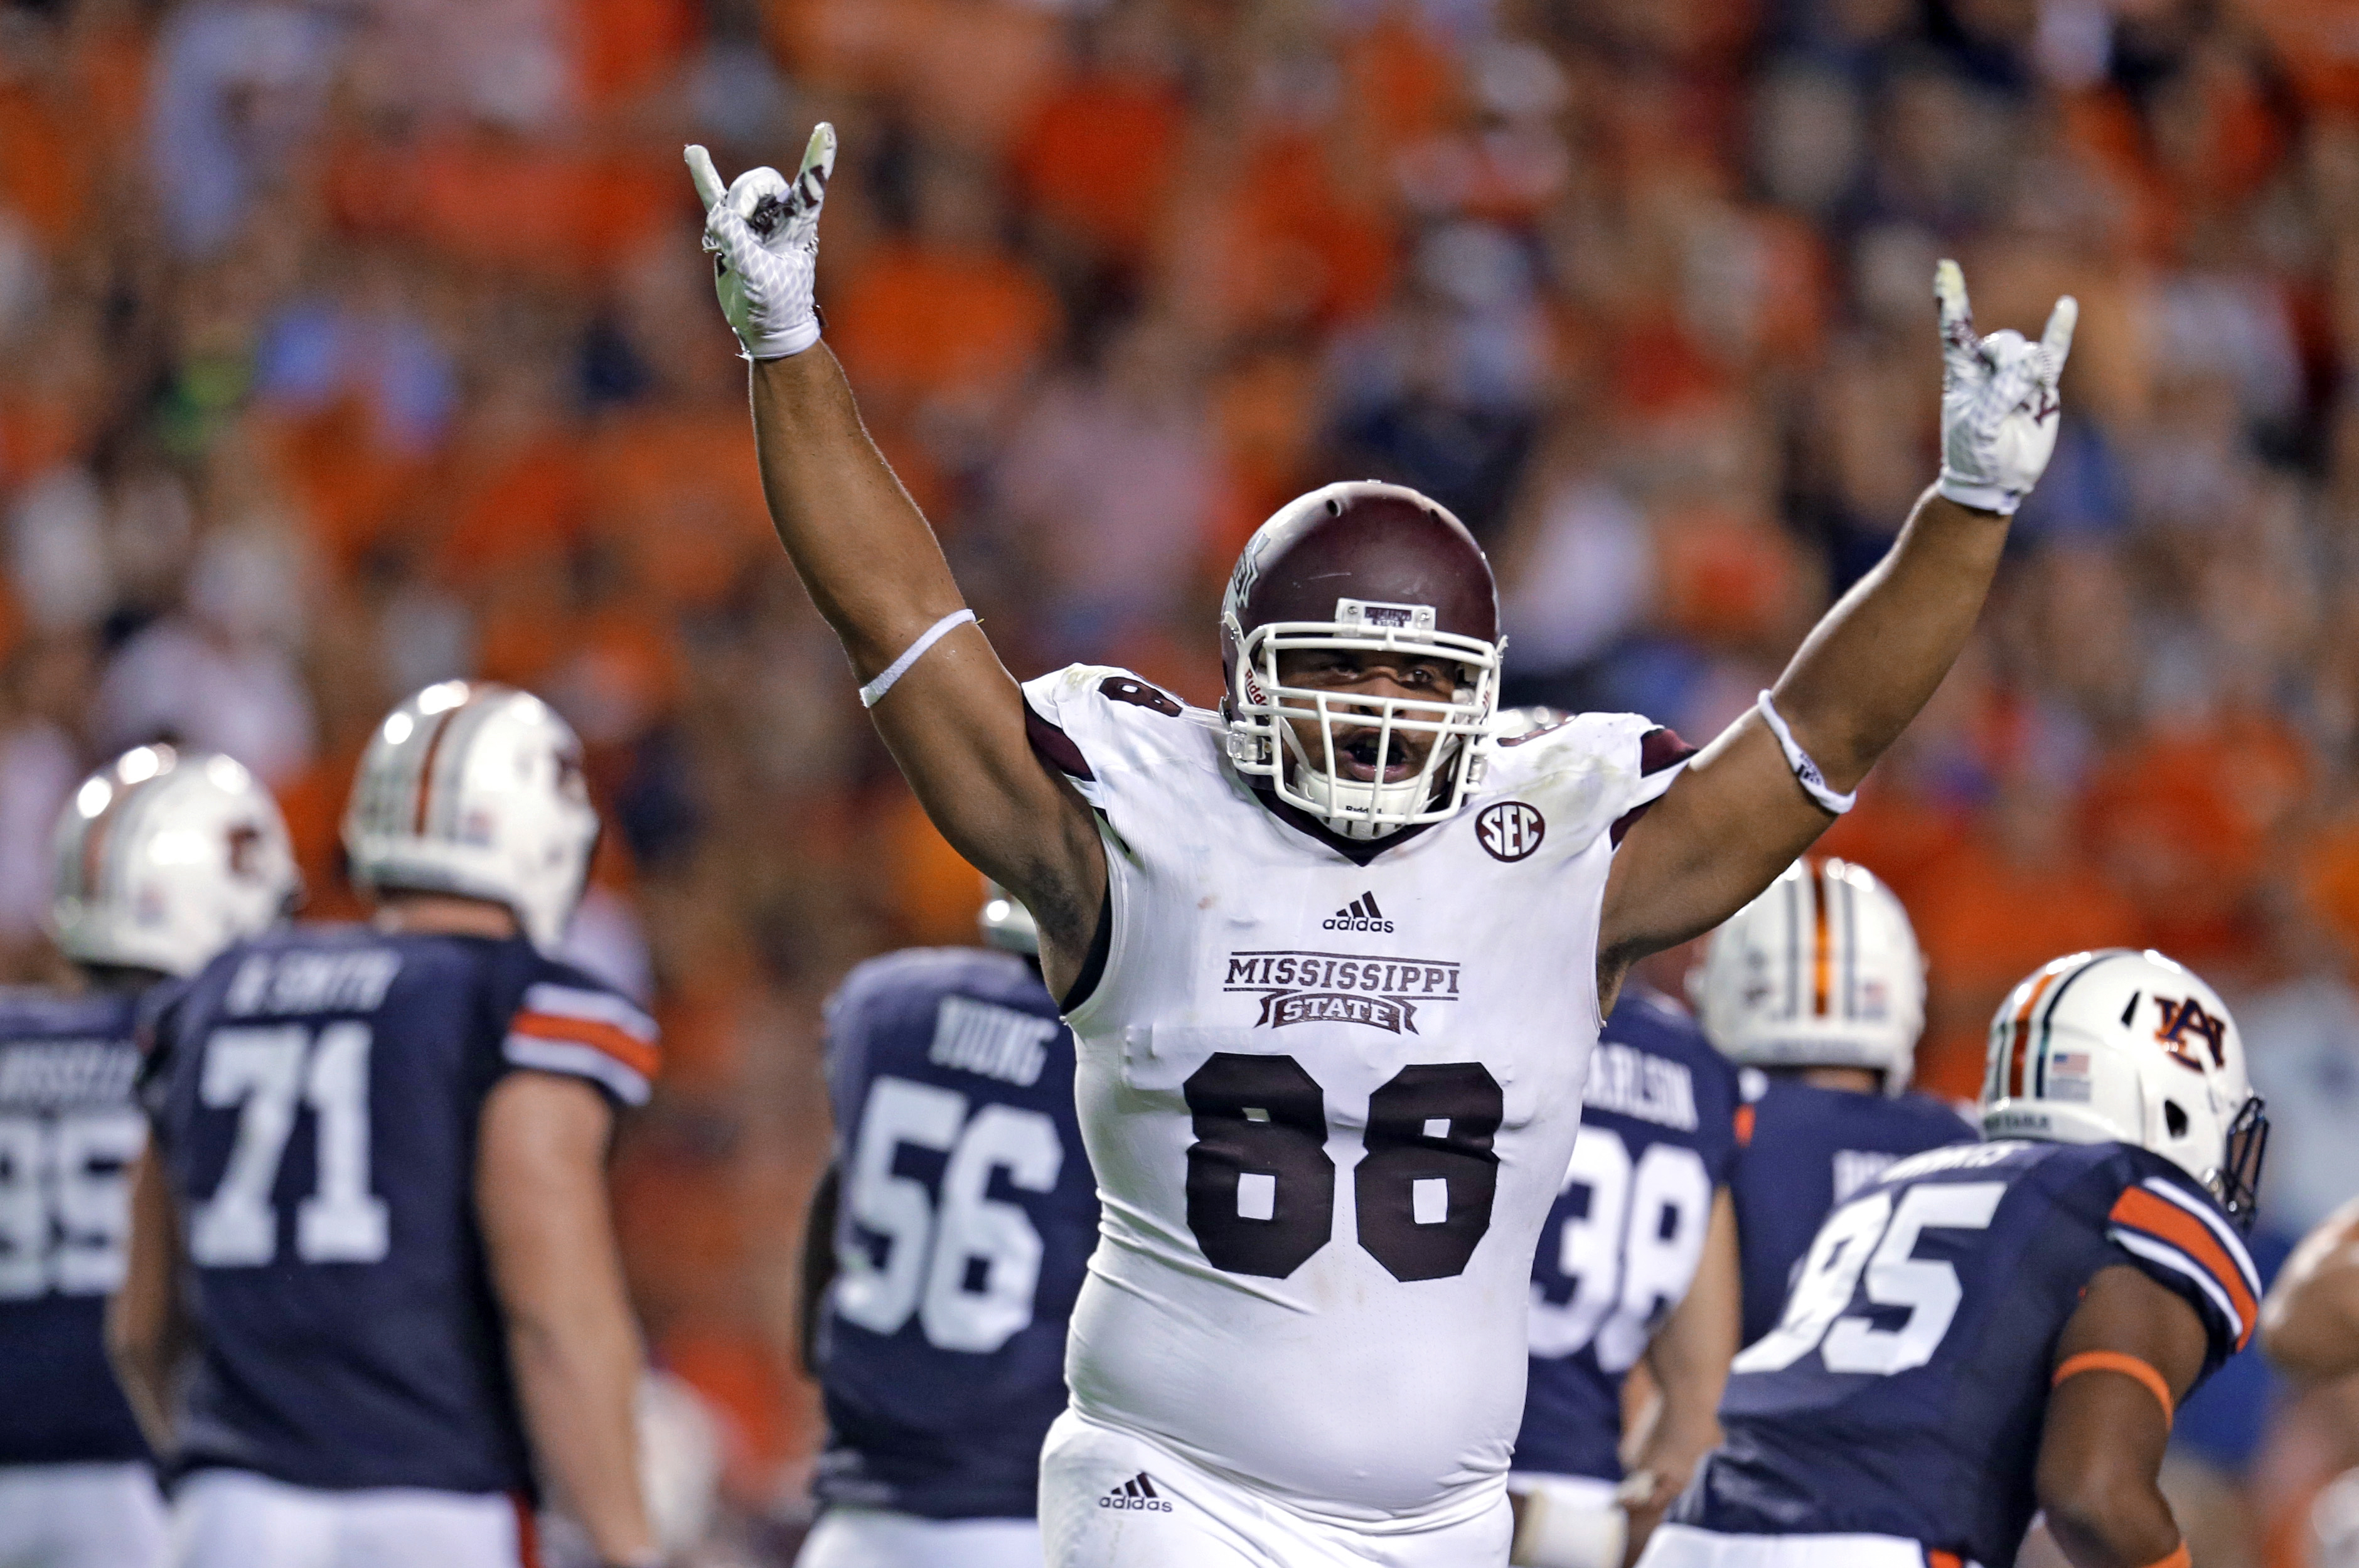 Mississippi State defensive lineman Nick James (88) celebrates after Auburn's Daniel Carlson (38) missed a field goal during the first half of an NCAA college football game, Saturday, Sept. 26, 2015, in Auburn, Ala. (AP Photo/Butch Dill)